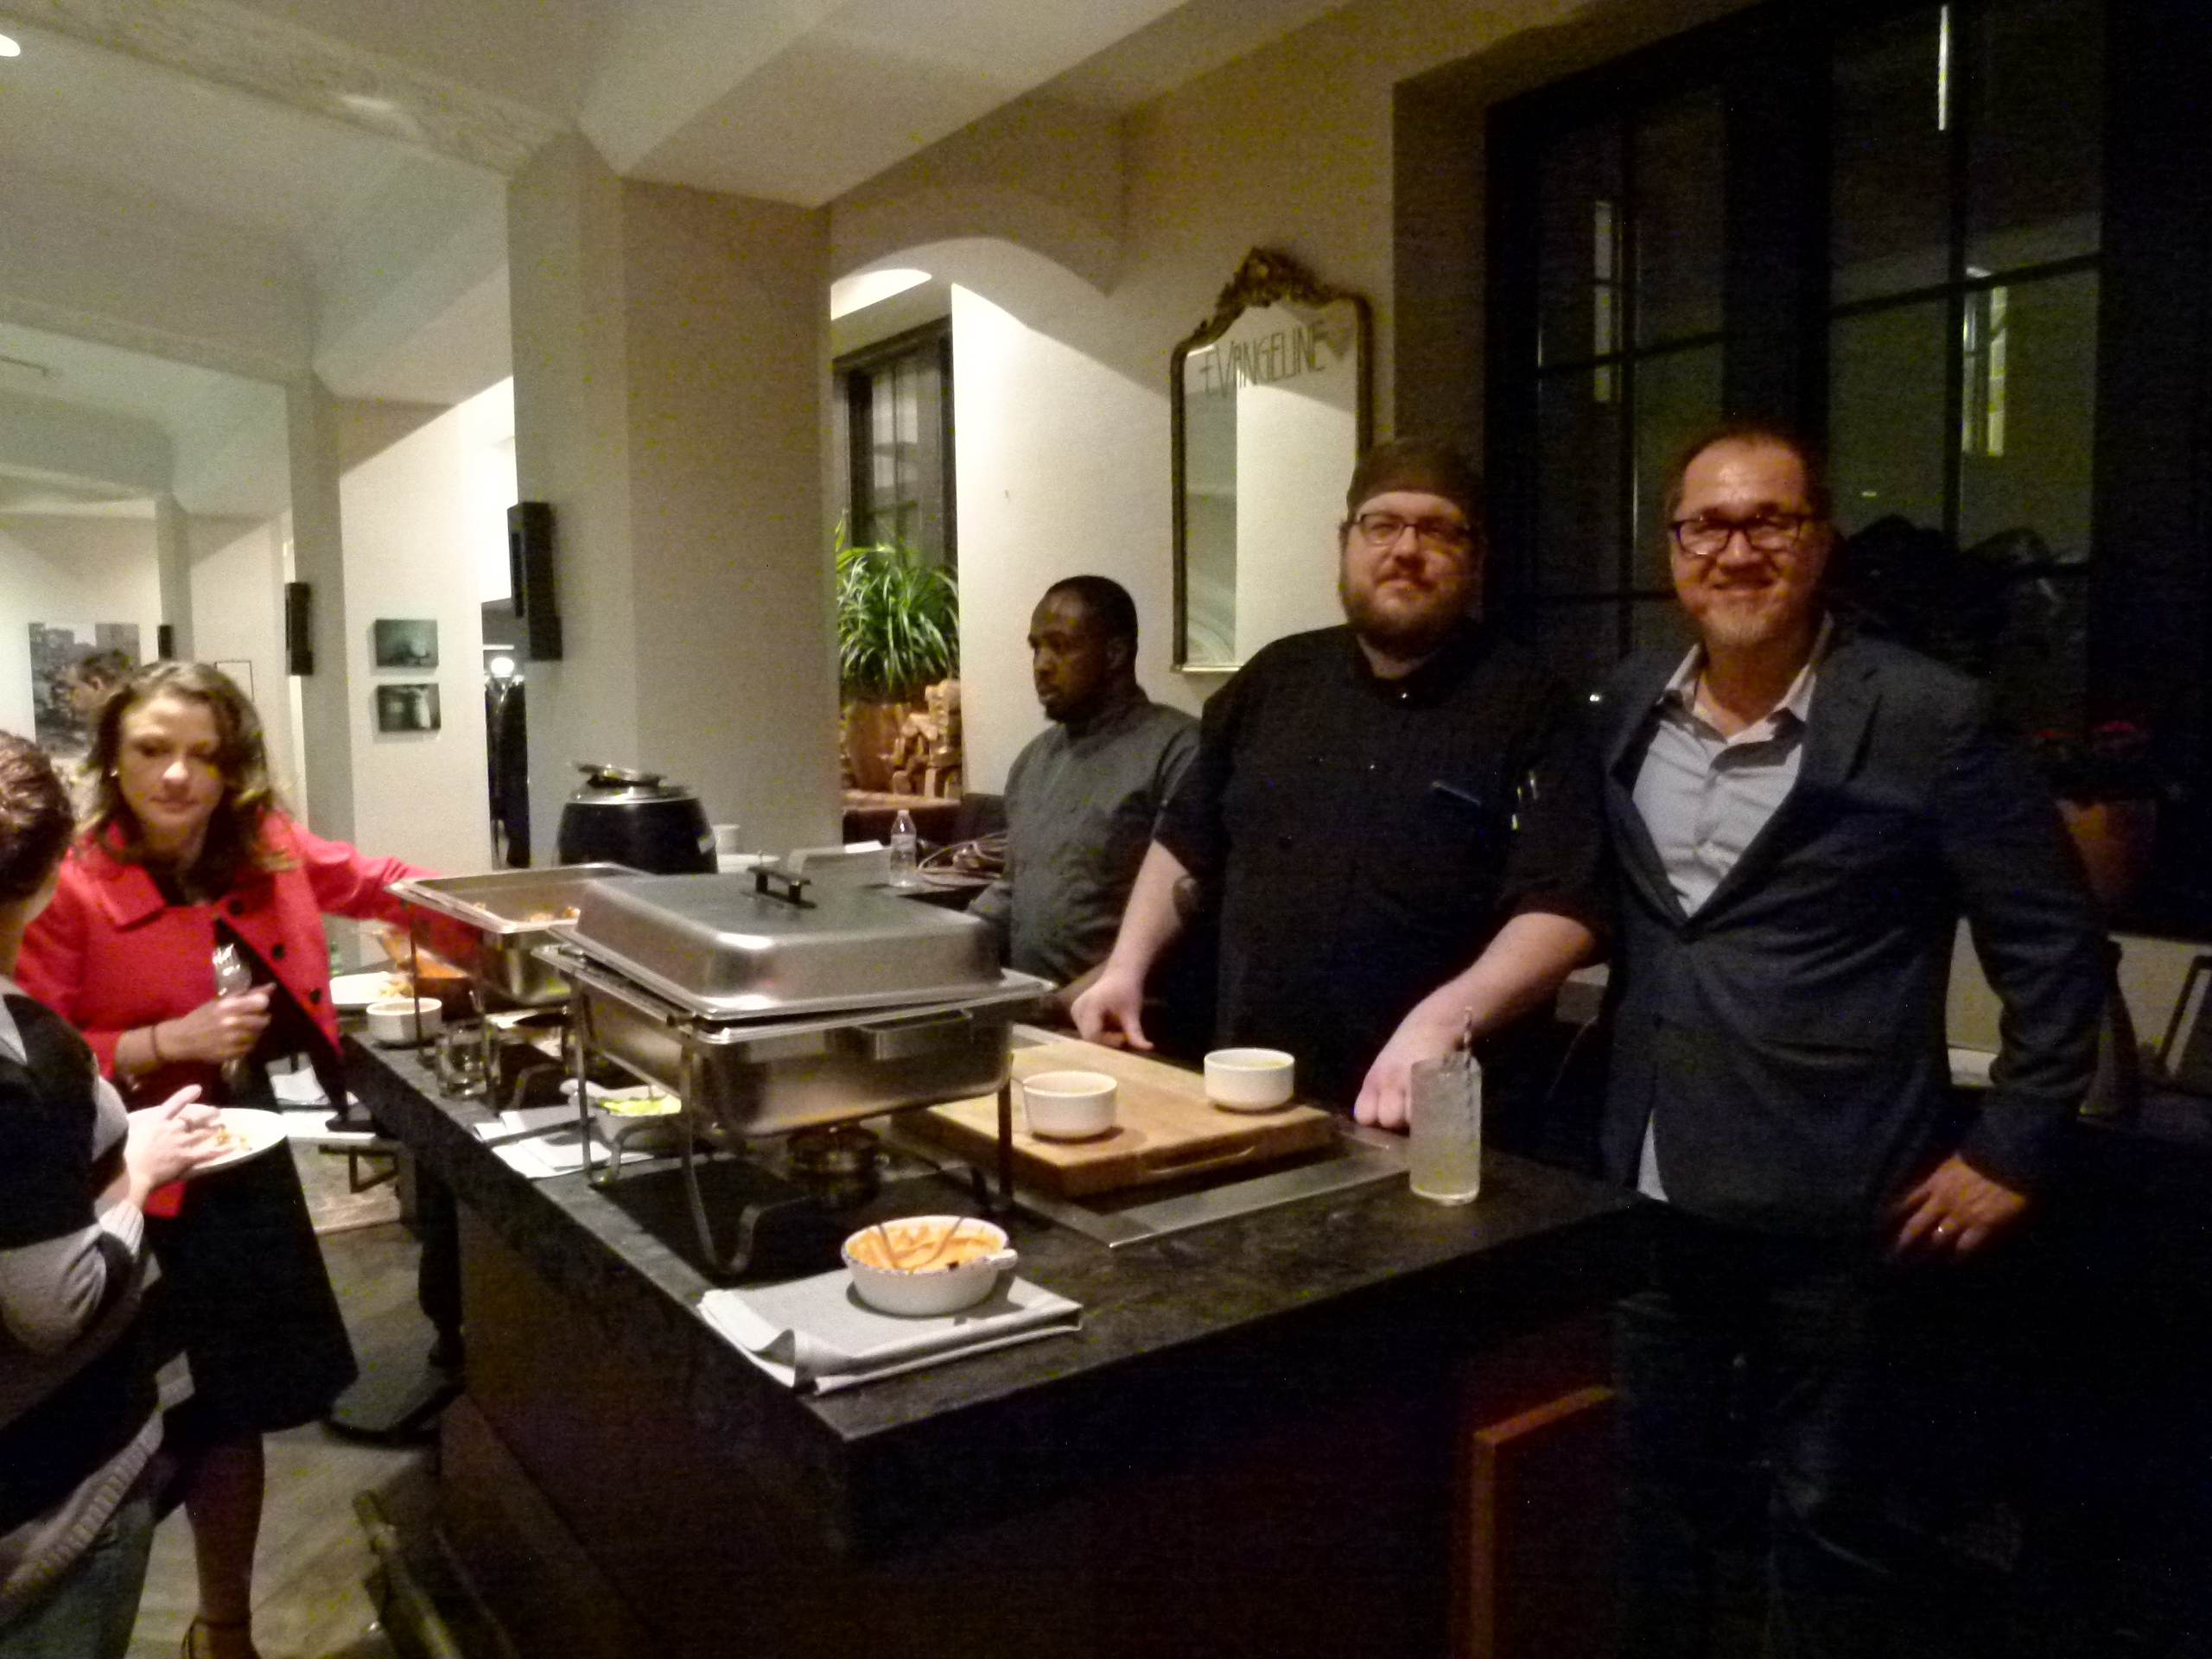 Pictured (r. to l.) Bill Shanon, GM of or, The Whale; Eli Decko, Executive Chef; and Richard Smith, line cook, work the buffet line to keep guests well fed.